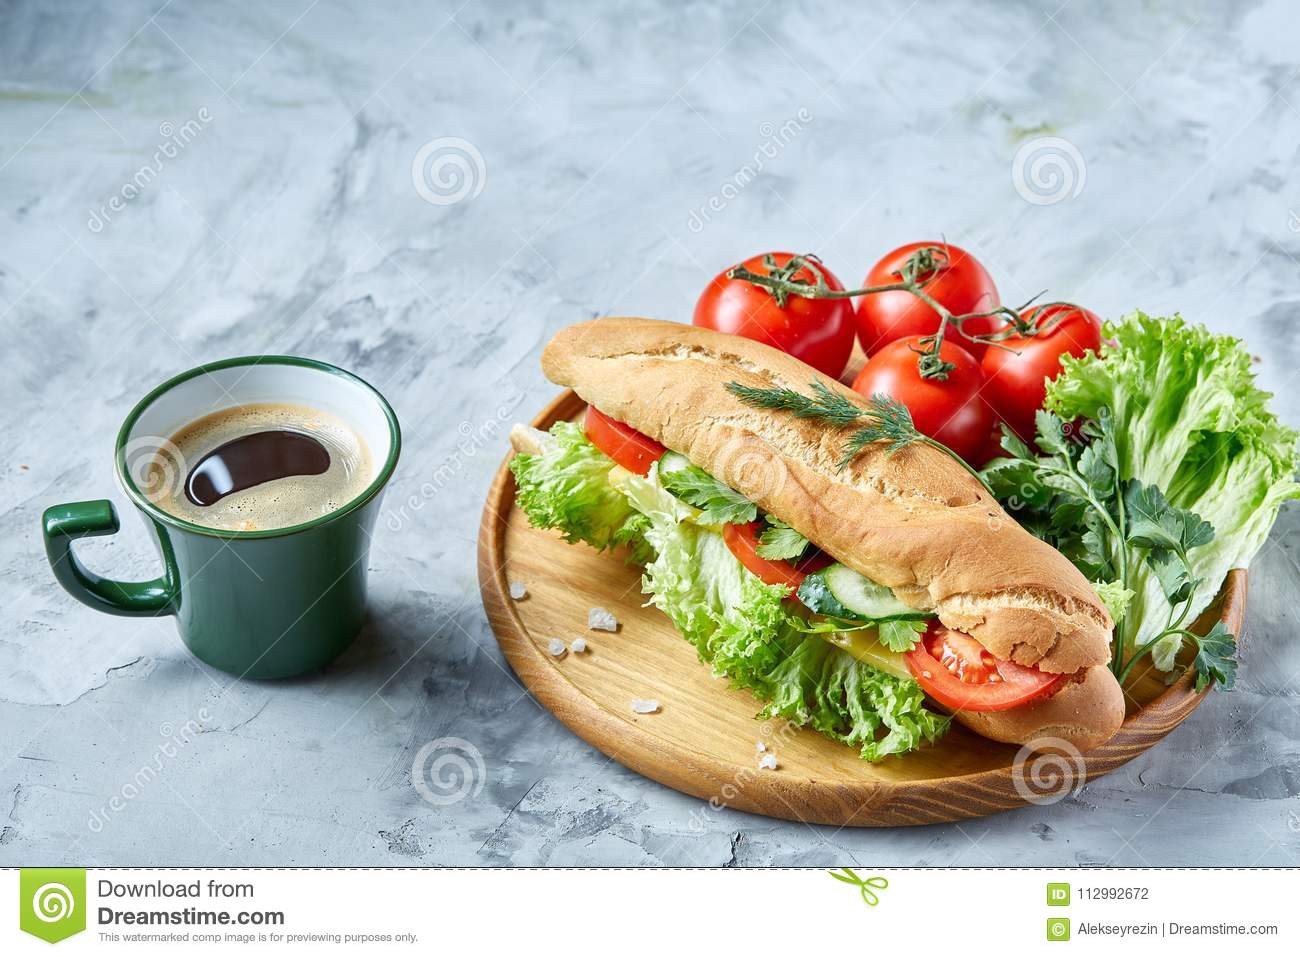 Fresh sandwich with lettuce, tomatoes, cheese on wooden plate, cup of coffee on white background, selective focus